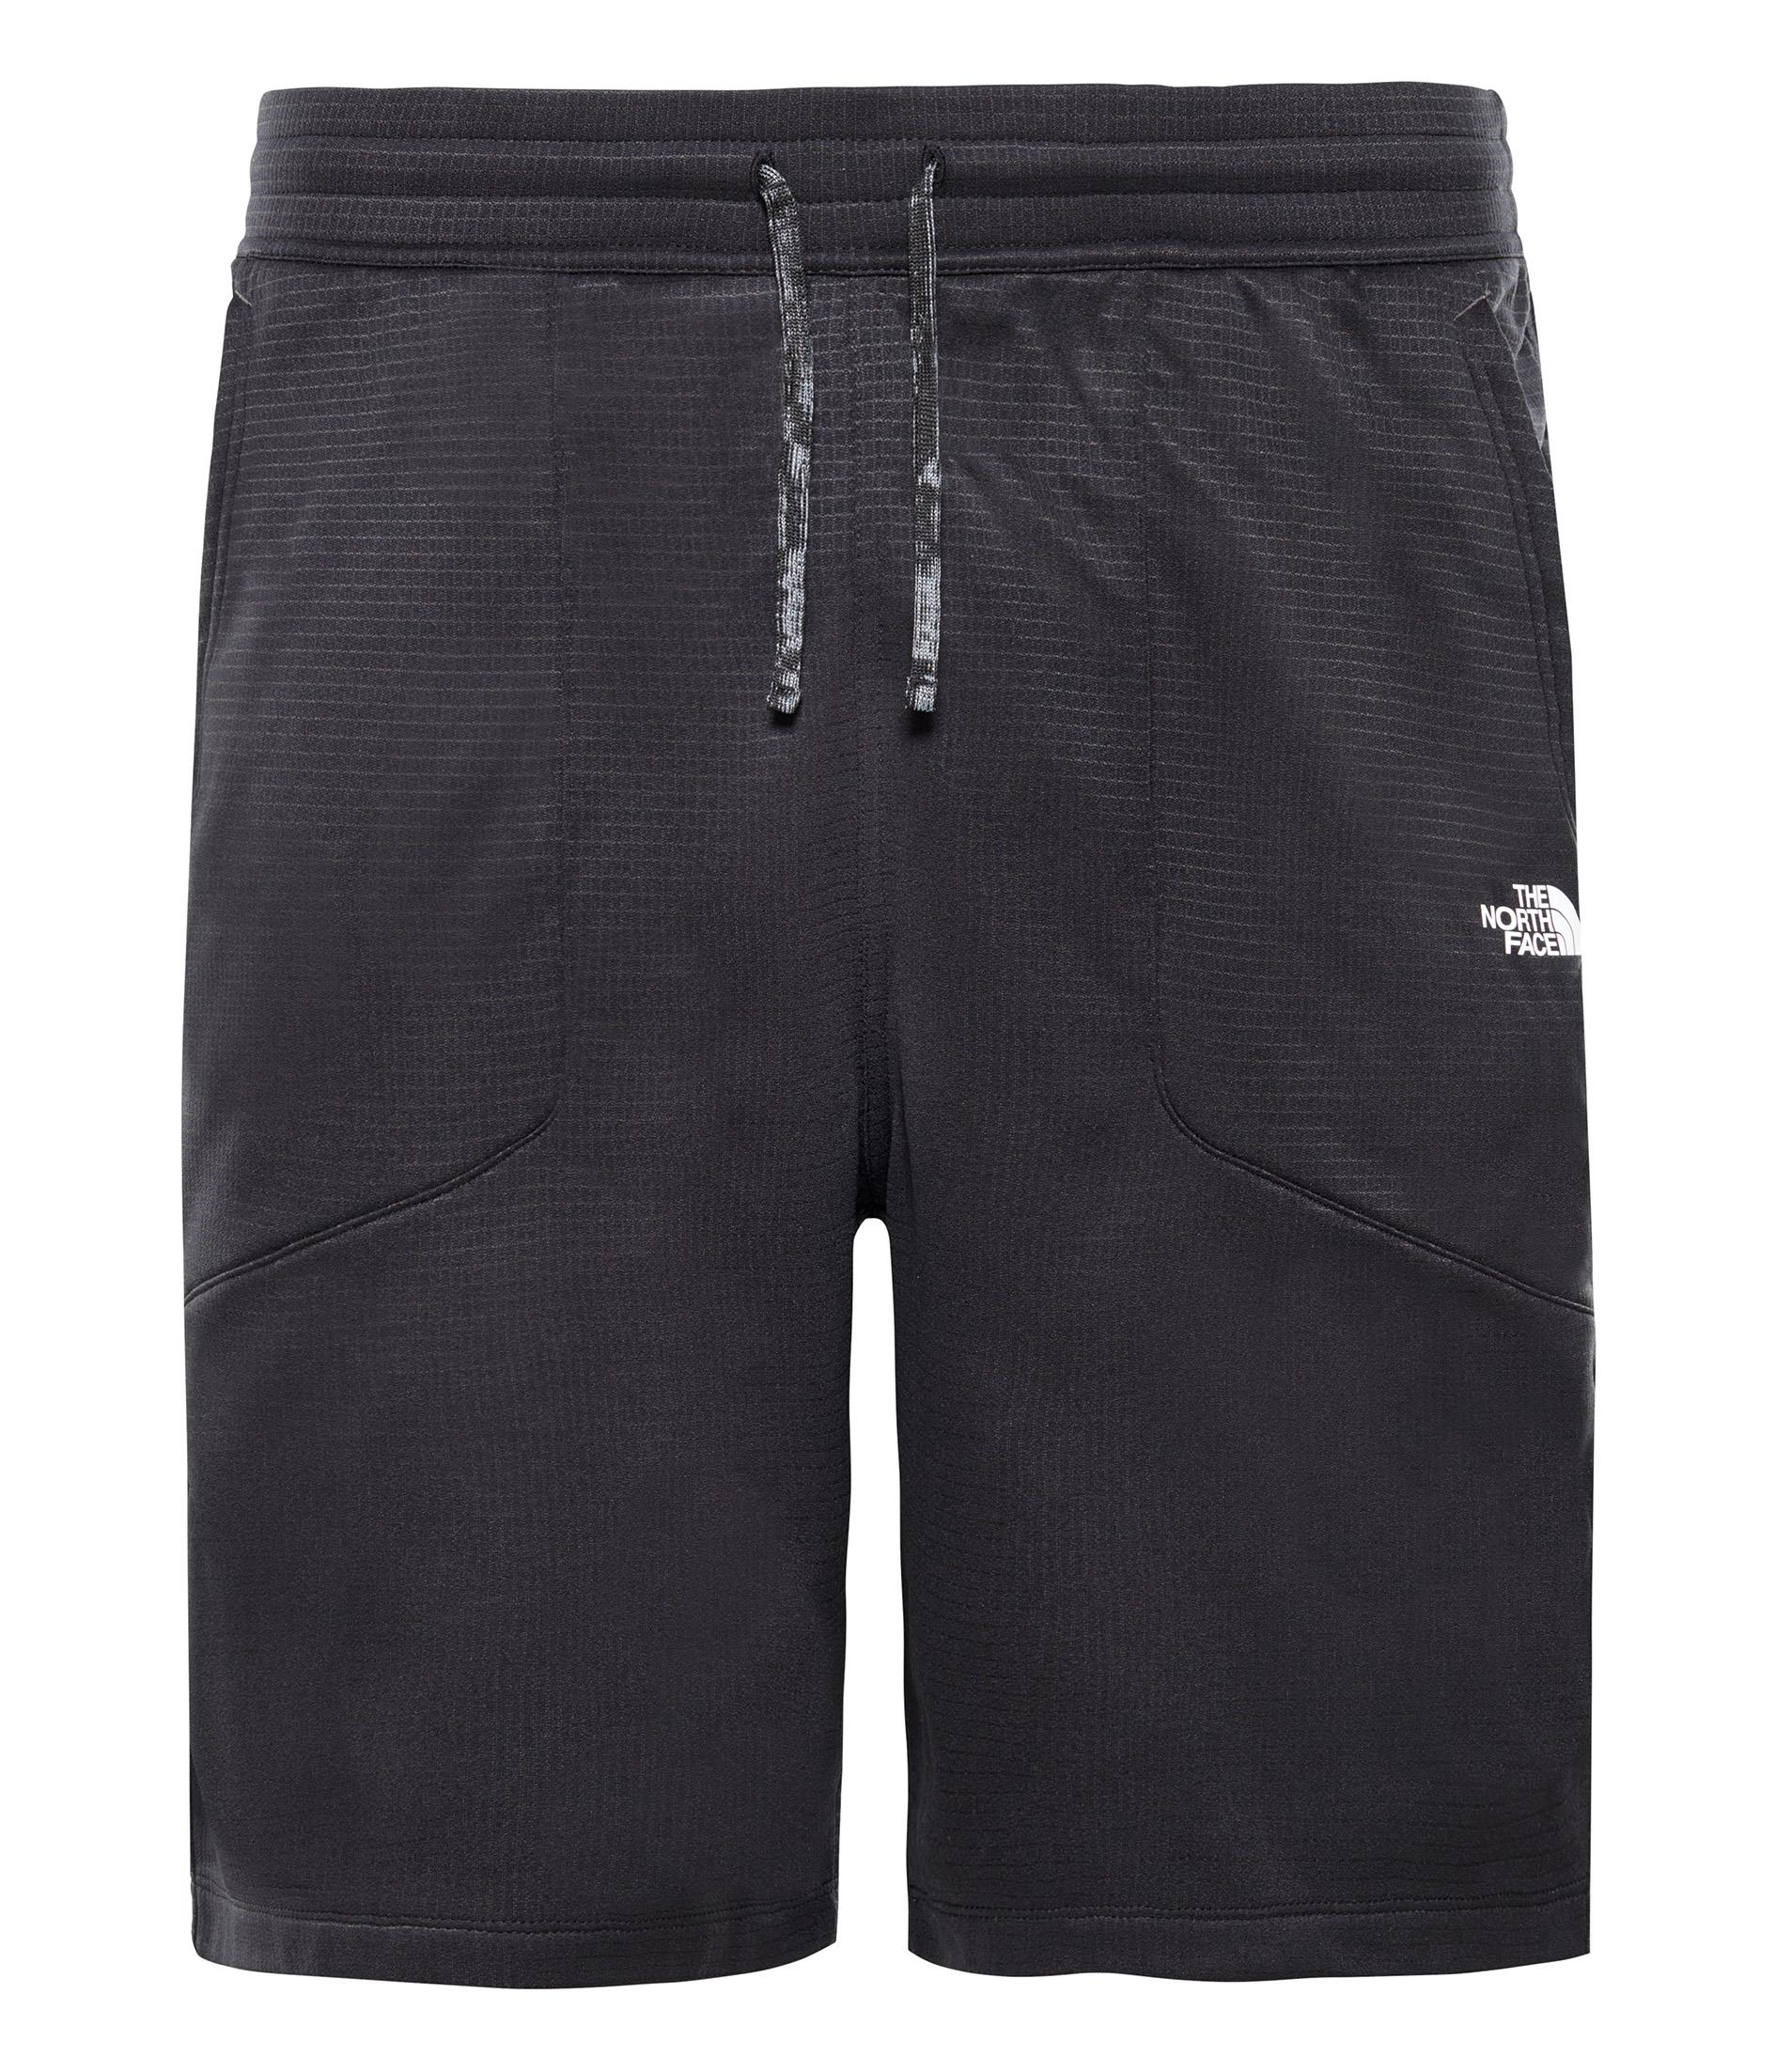 The Northface Erkek Train N Logo Short - Eu T93Ux1Jk3 Şort